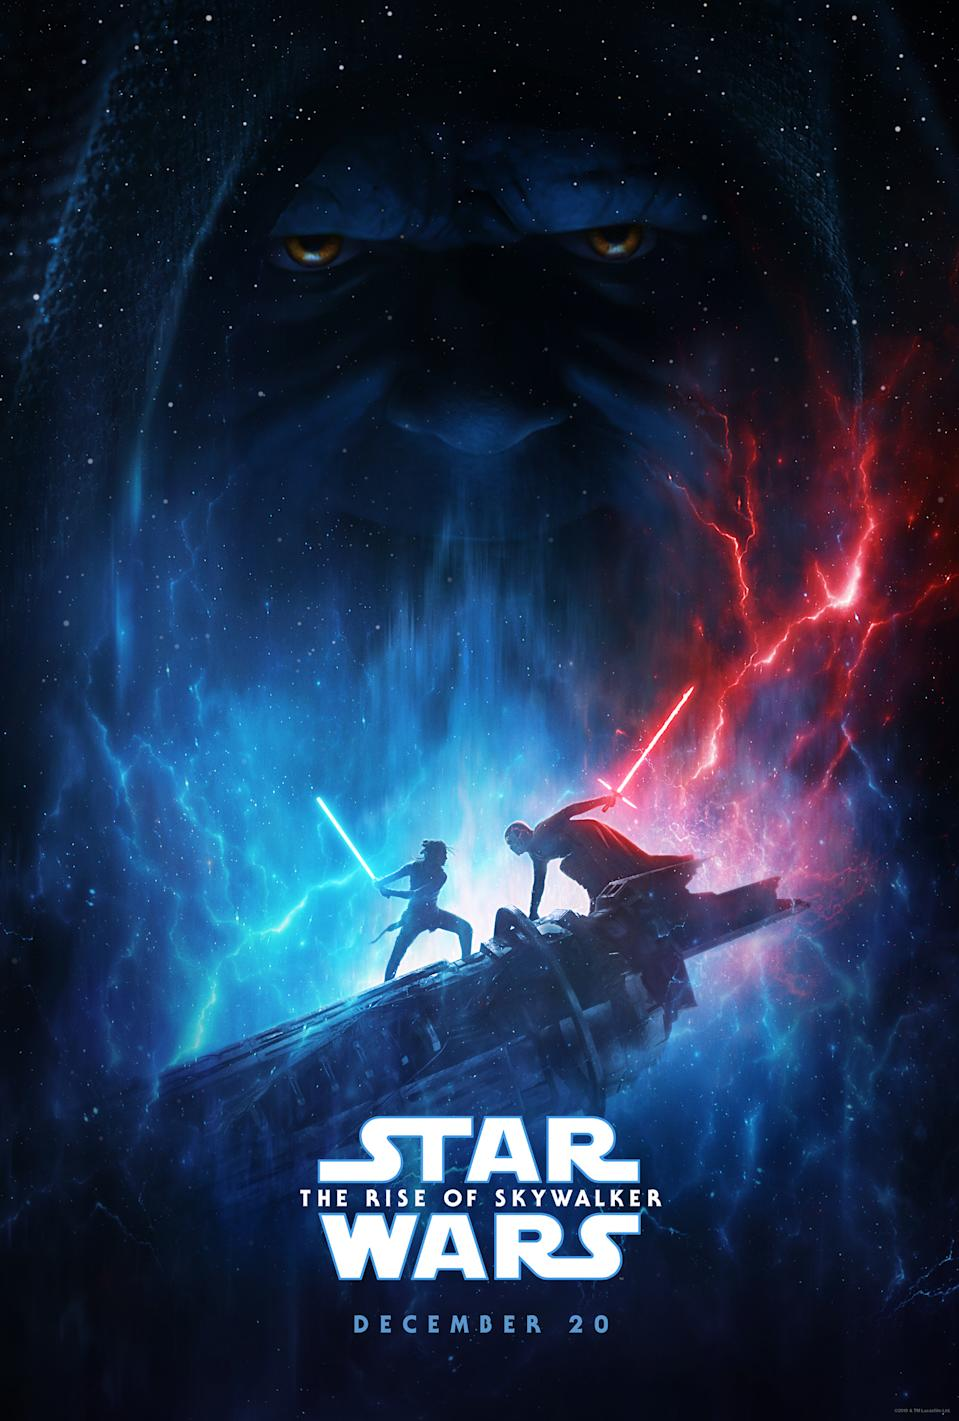 Star Wars: The Rise of Skywalker poster (Credit: DIsney)